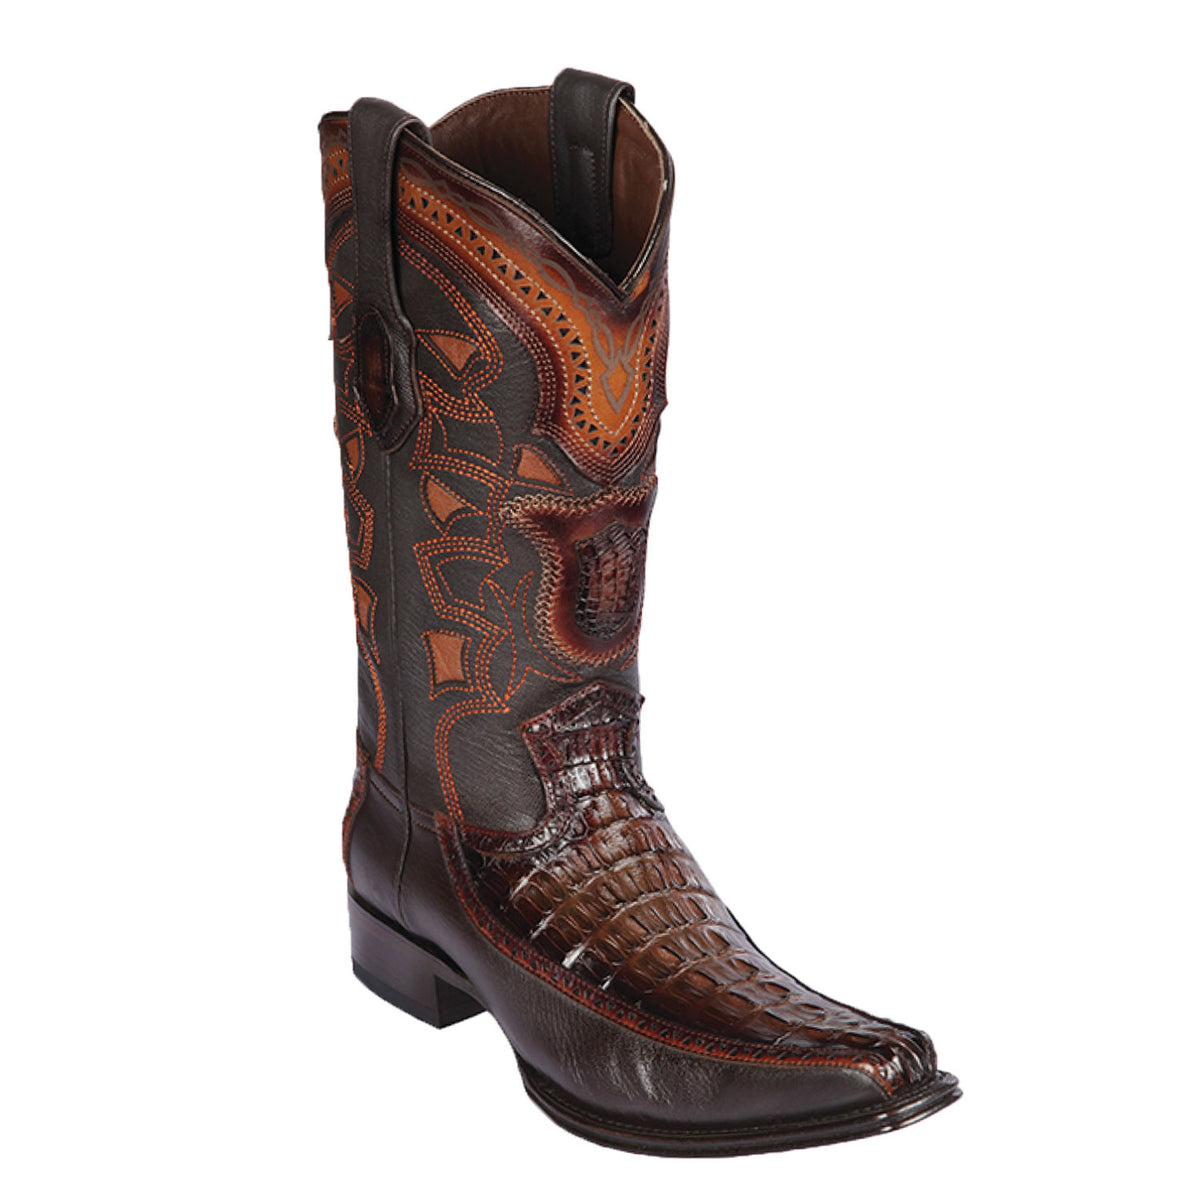 Caiman Tail & Deer Skin Boot LAB-76F01